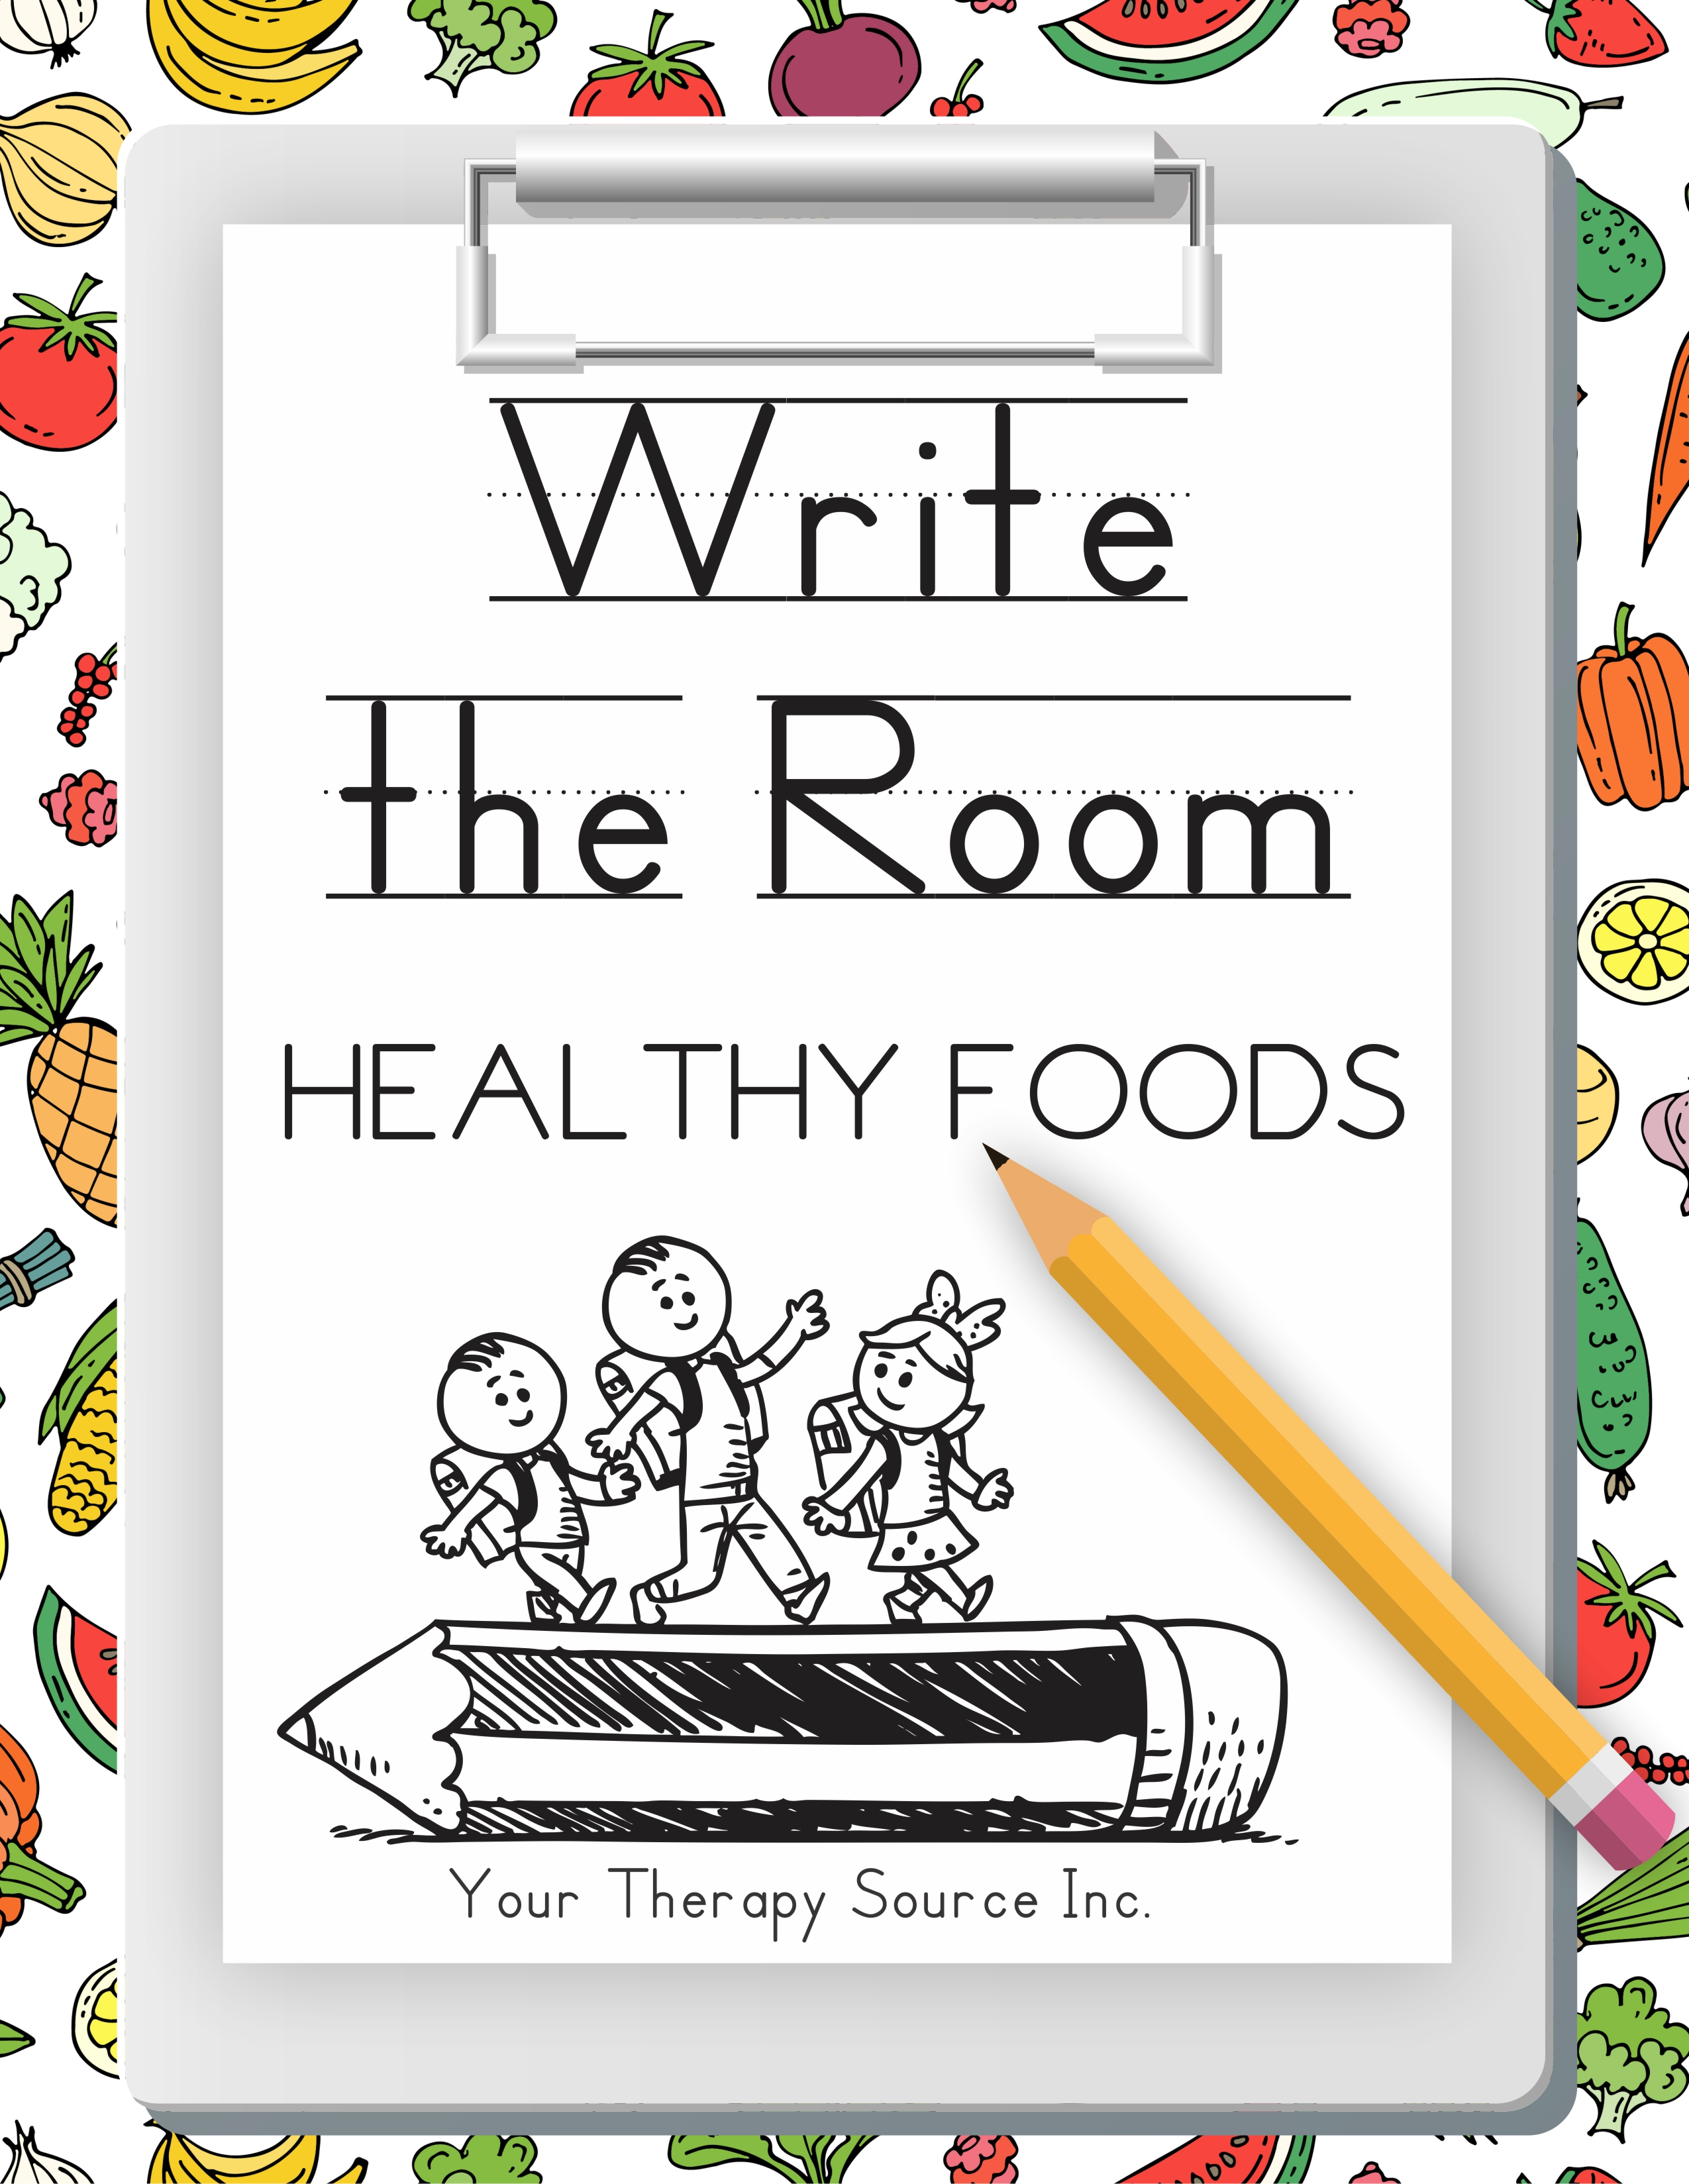 Write the Room Healthy Foods digital download includes 40 healthy food picture word cards from the 5 food groups along with differentiated recording sheets to support various levels of handwriting skills.